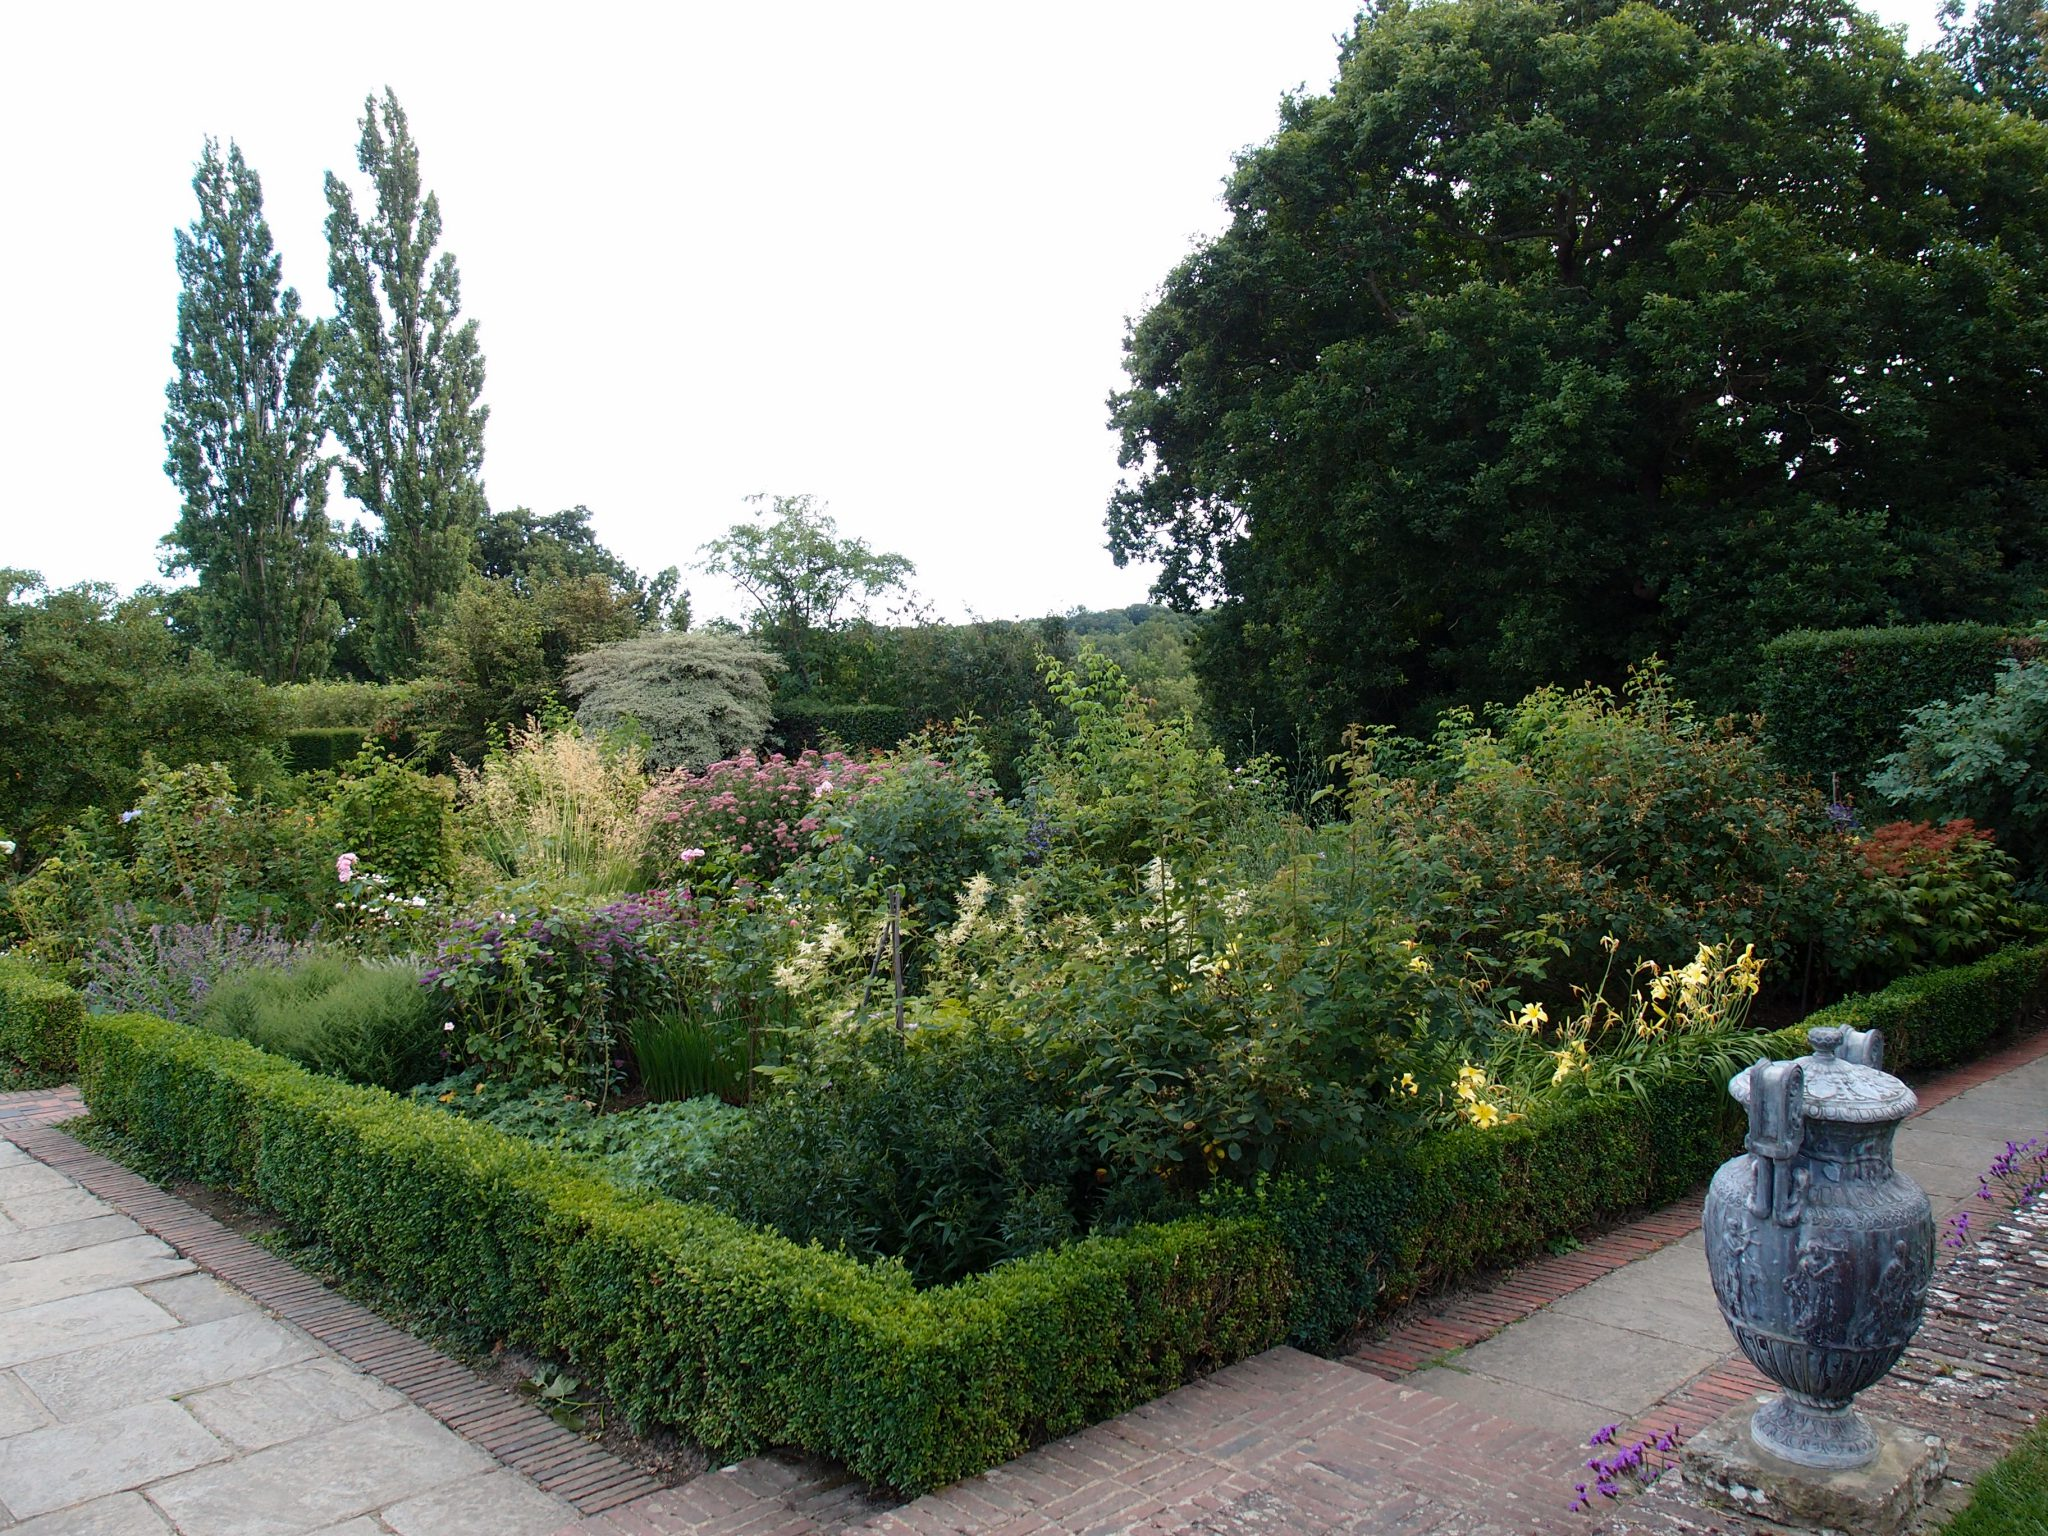 A portion of the Rose Garden